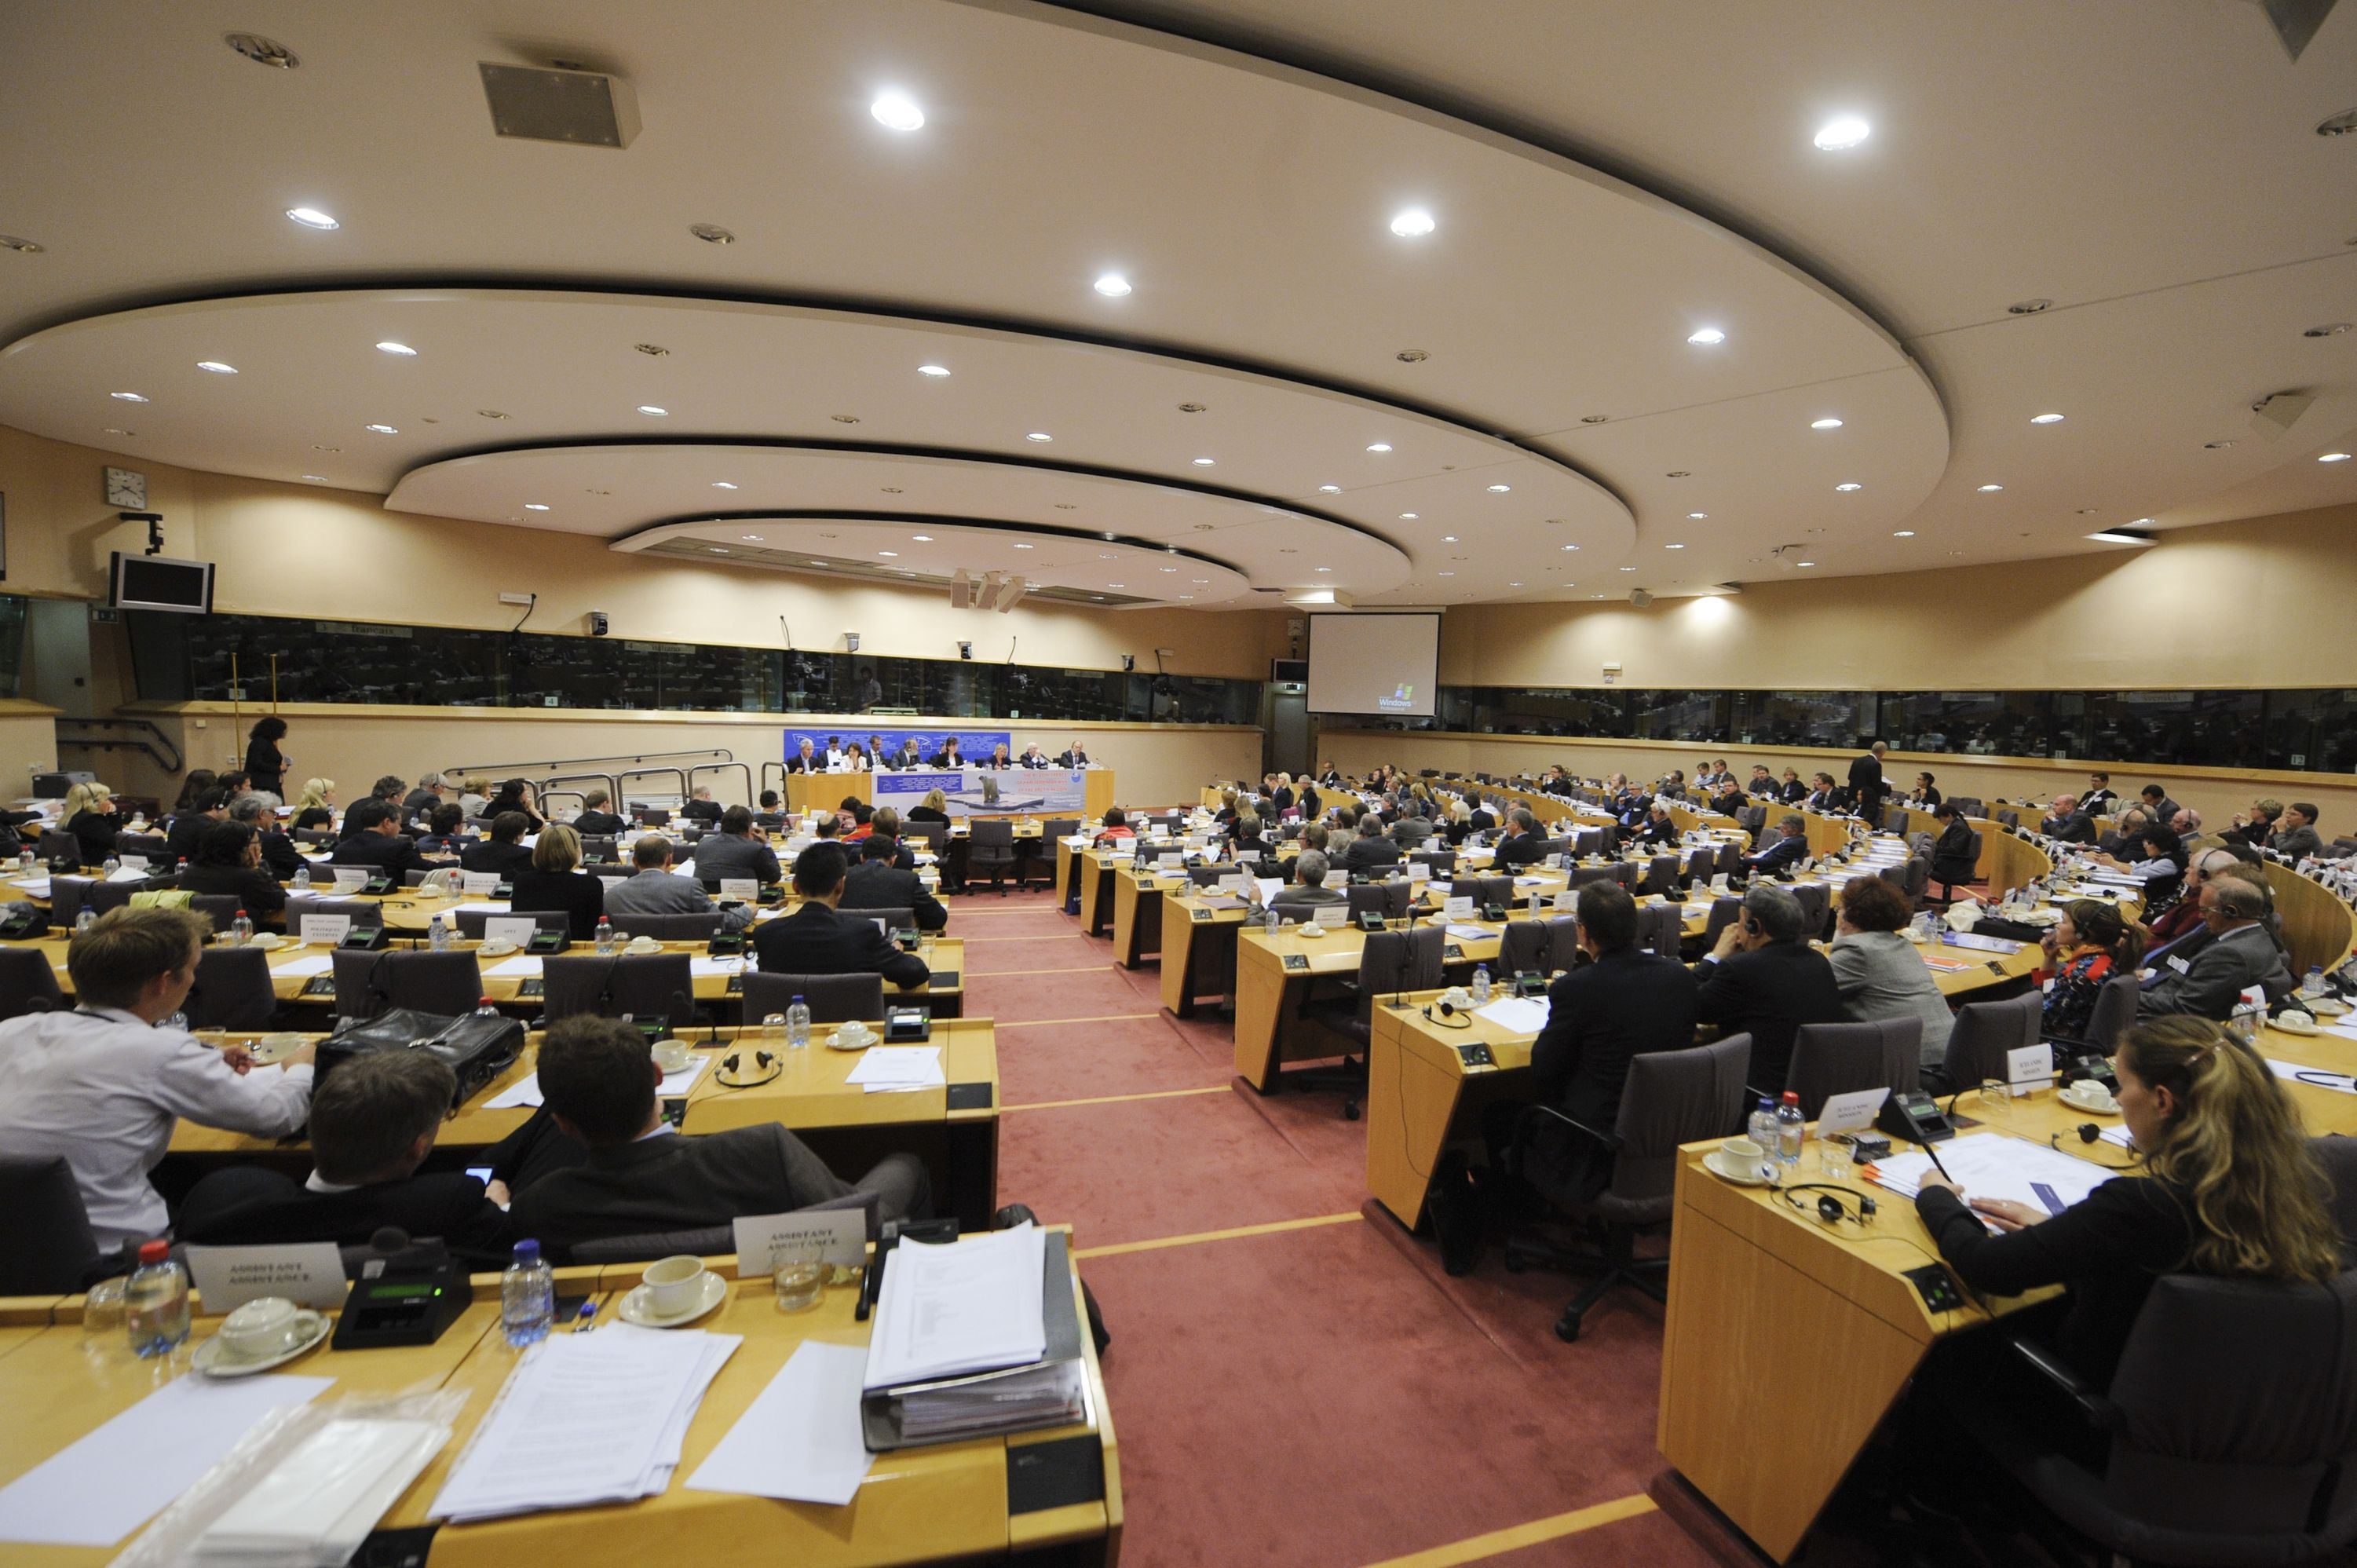 Board - EU Parliament - Brussels 092010 i